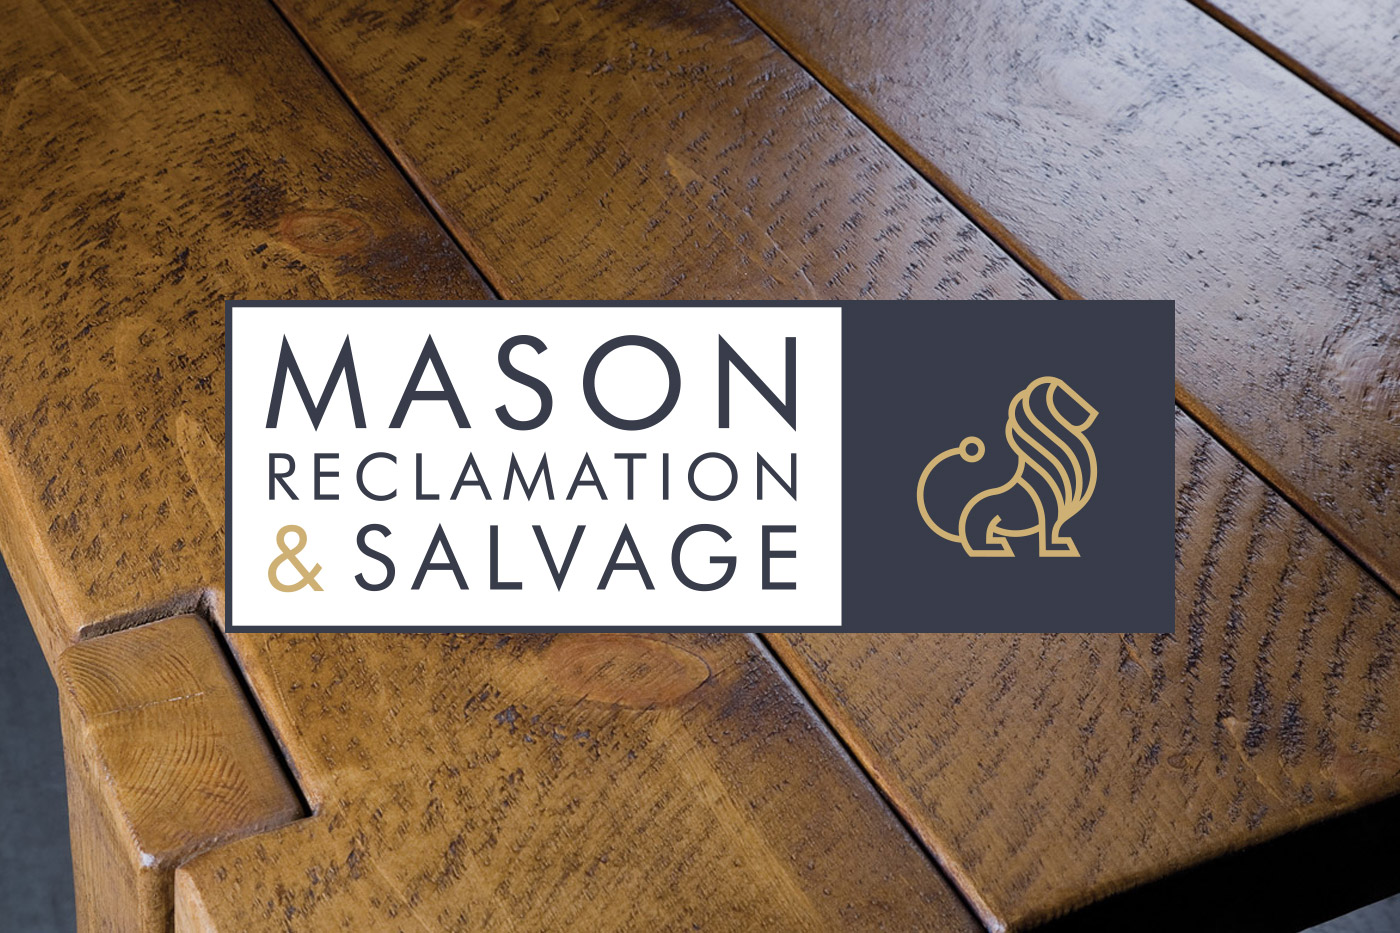 masonreclamationsalvage-feature